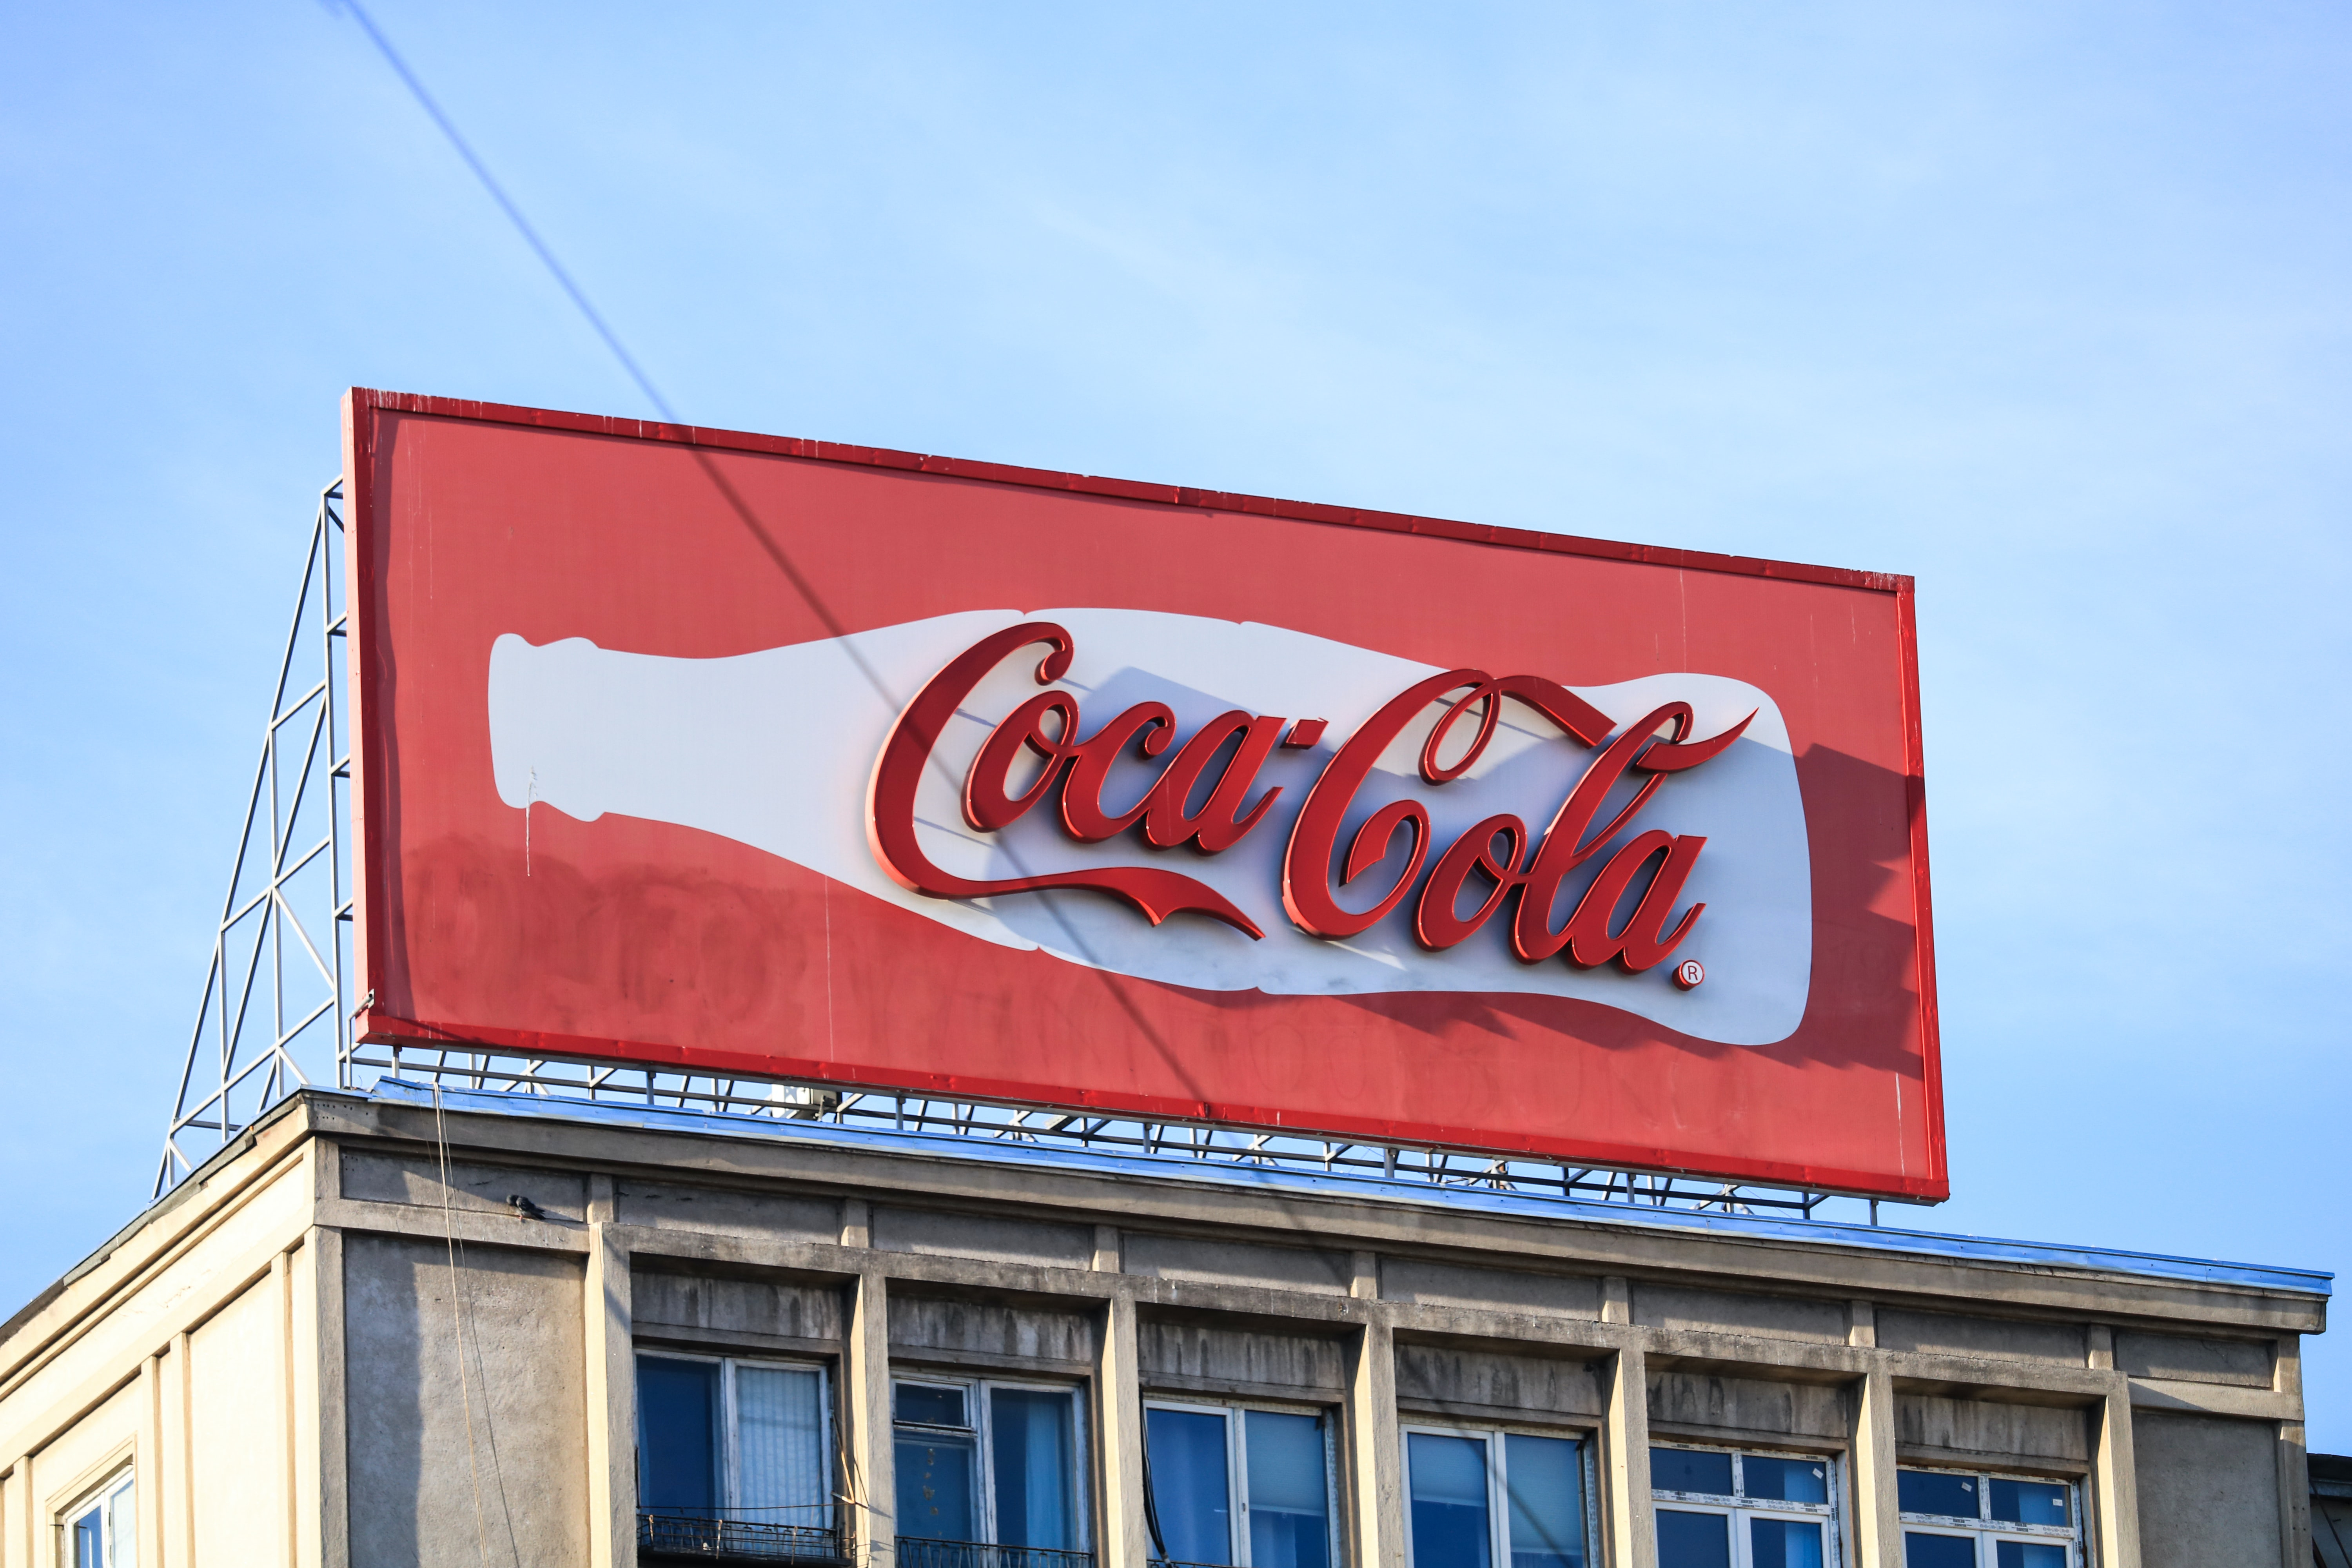 Billboards are one way to promote your brand